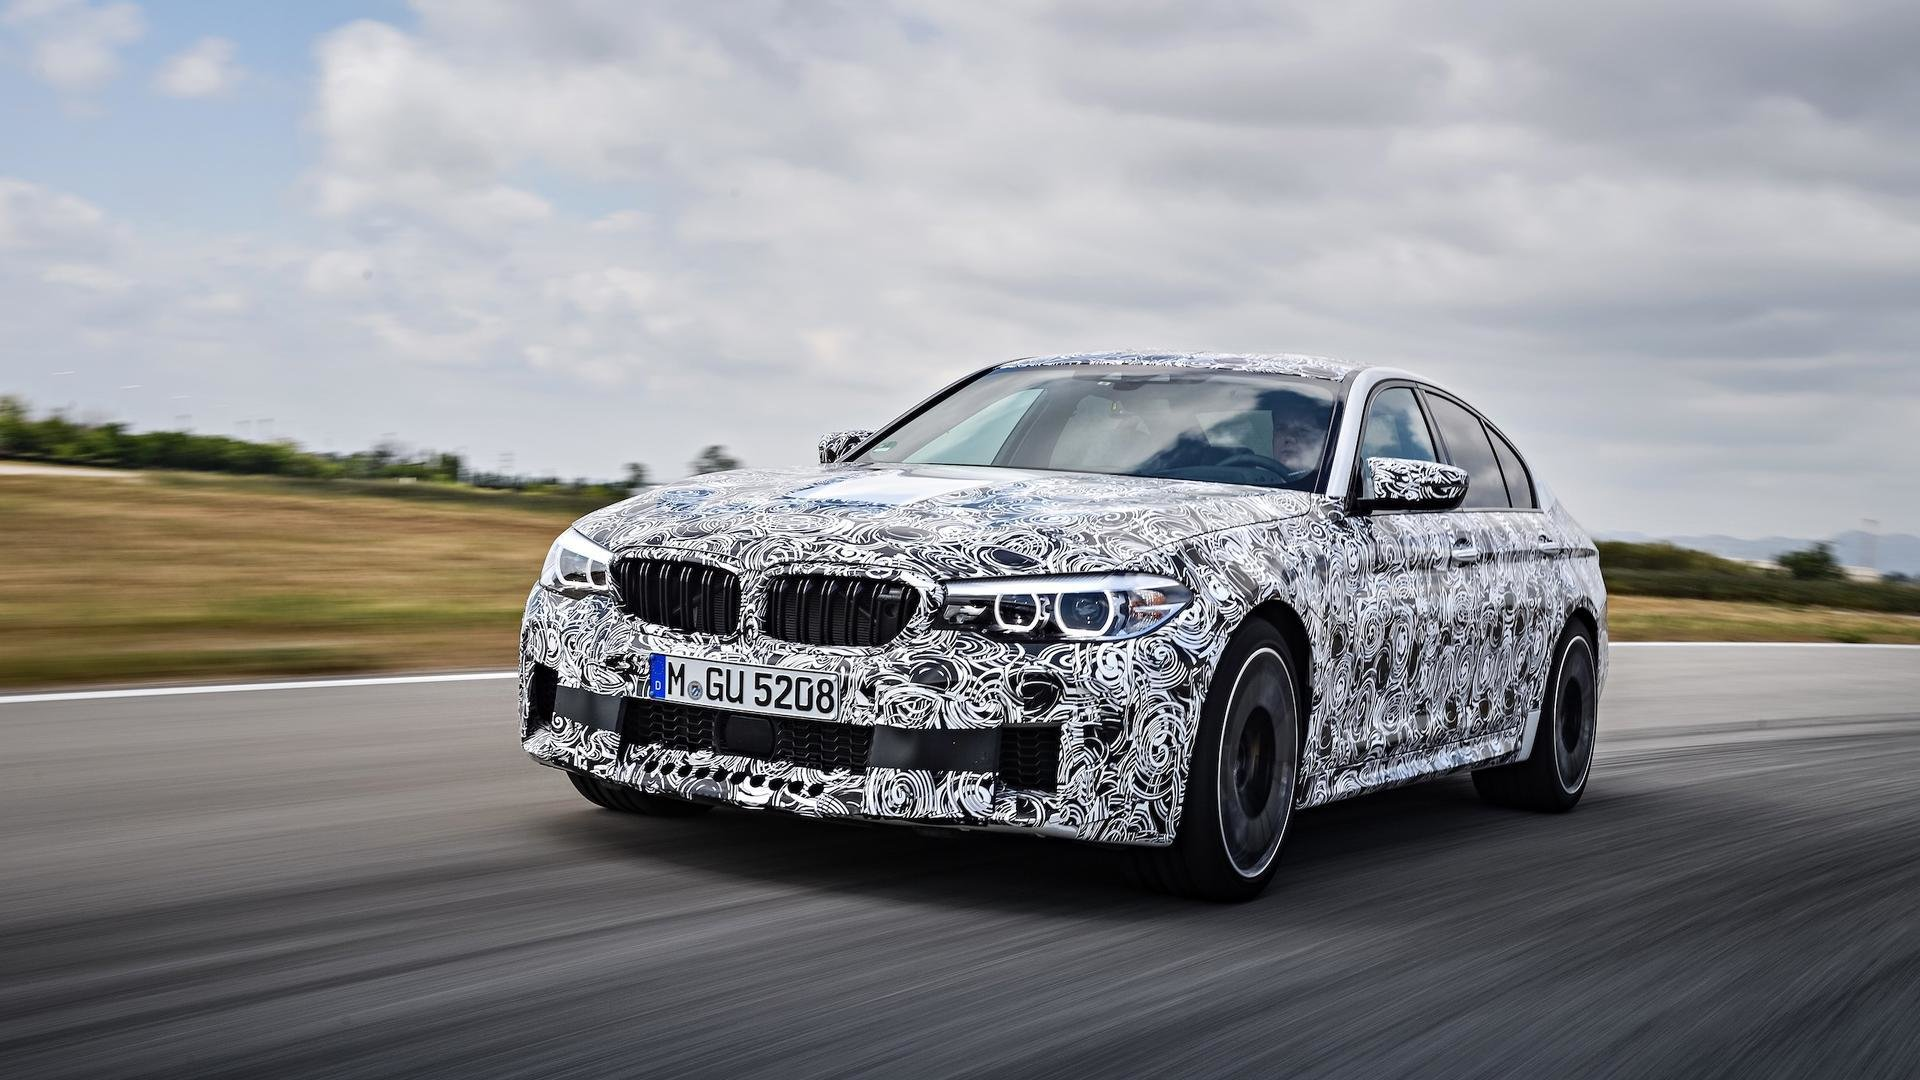 Latest 2018 Bmw M5 F90 Leaked Looks Amazing In Official Photos Free Download